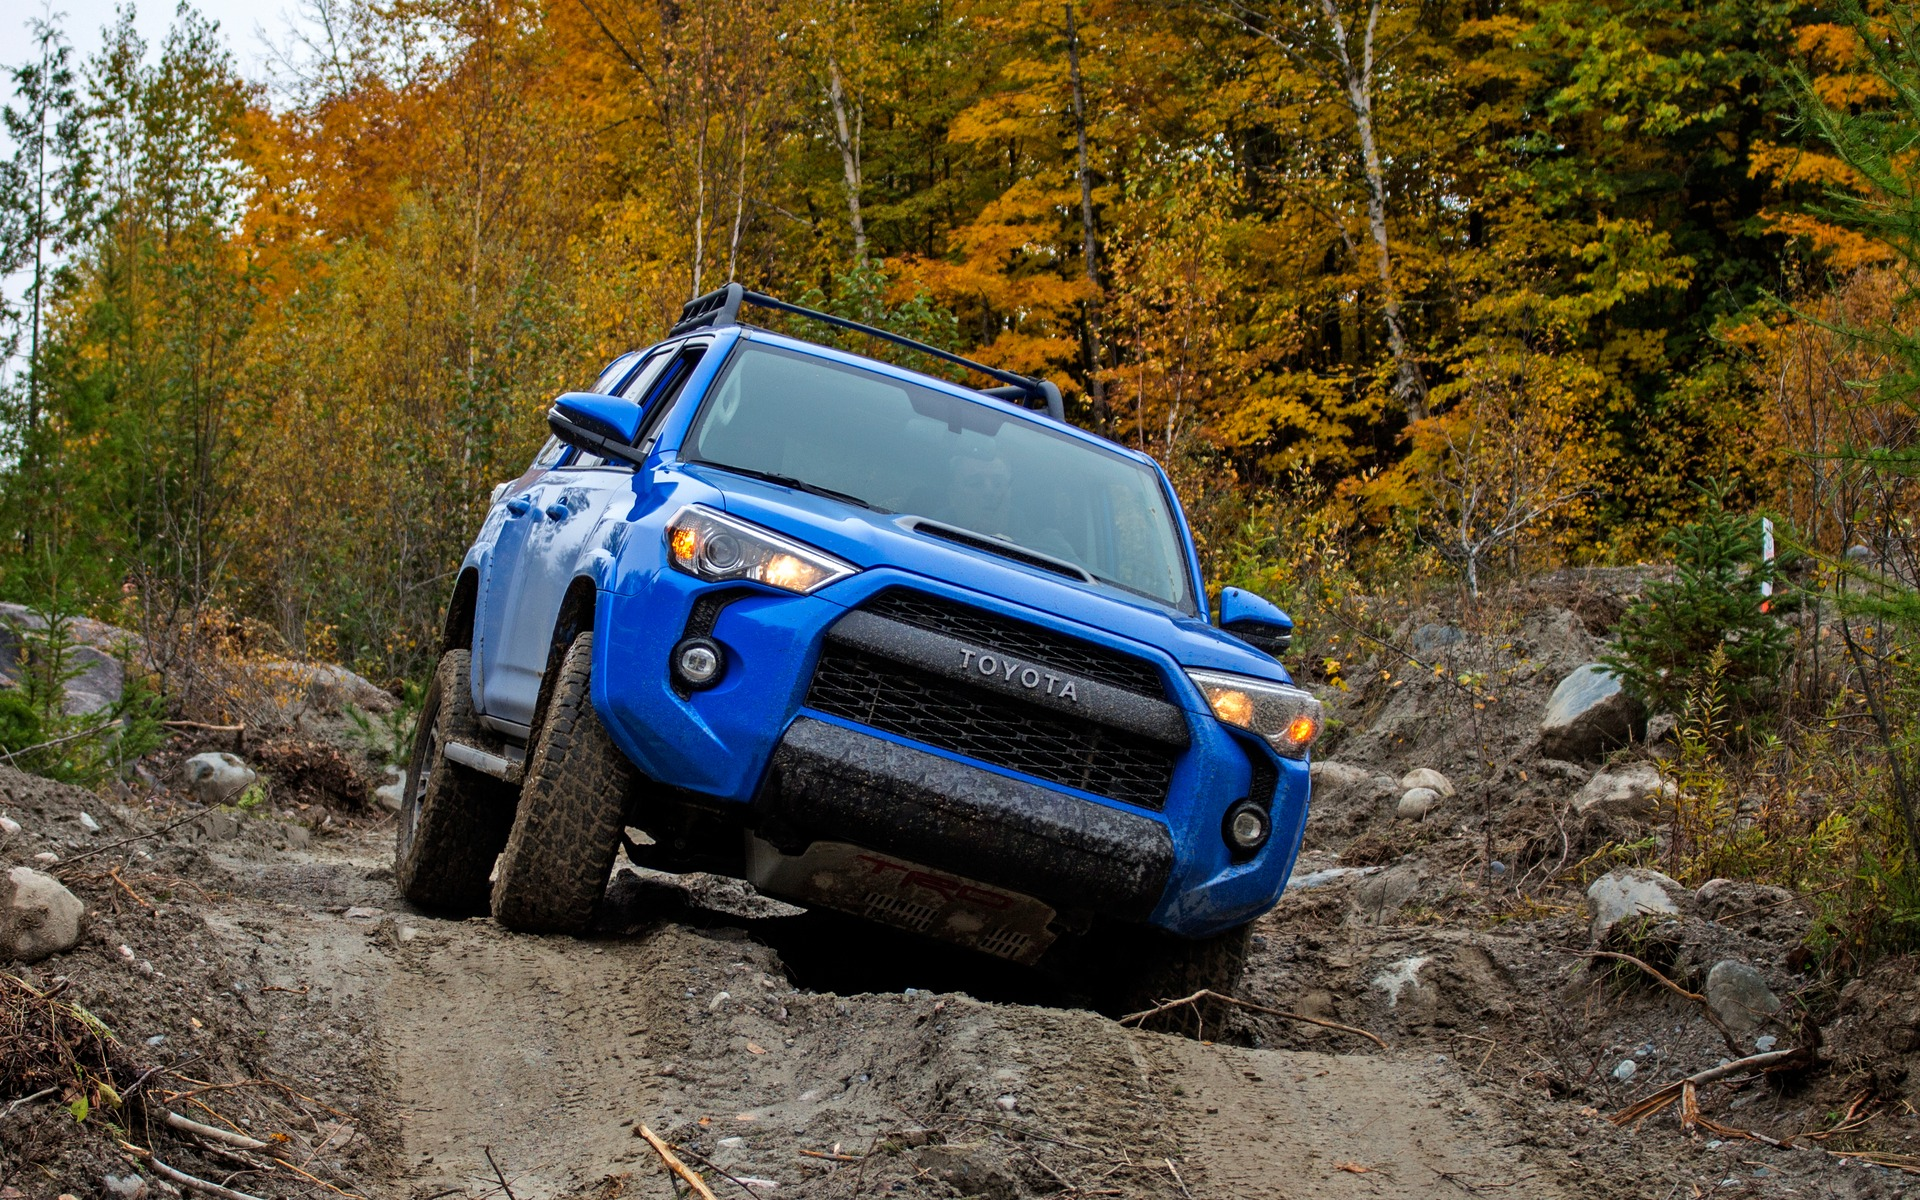 Toyota Trd Pro Here To Stay The Car Guide